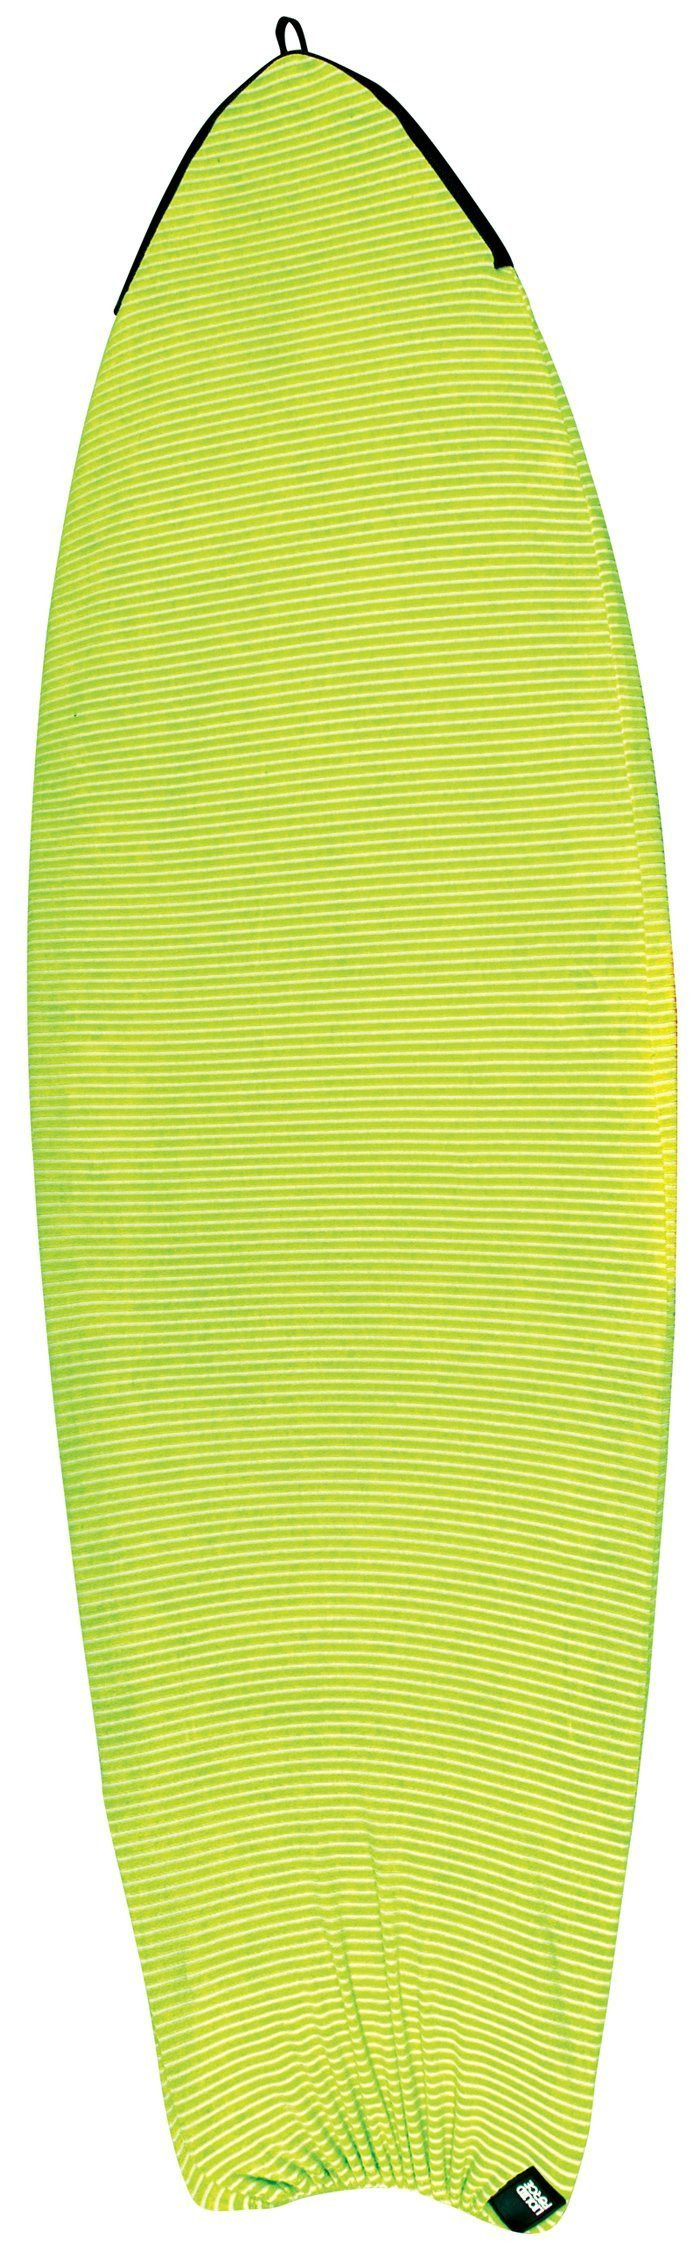 LIQUID FORCE KNIT BOARD SLEEVE